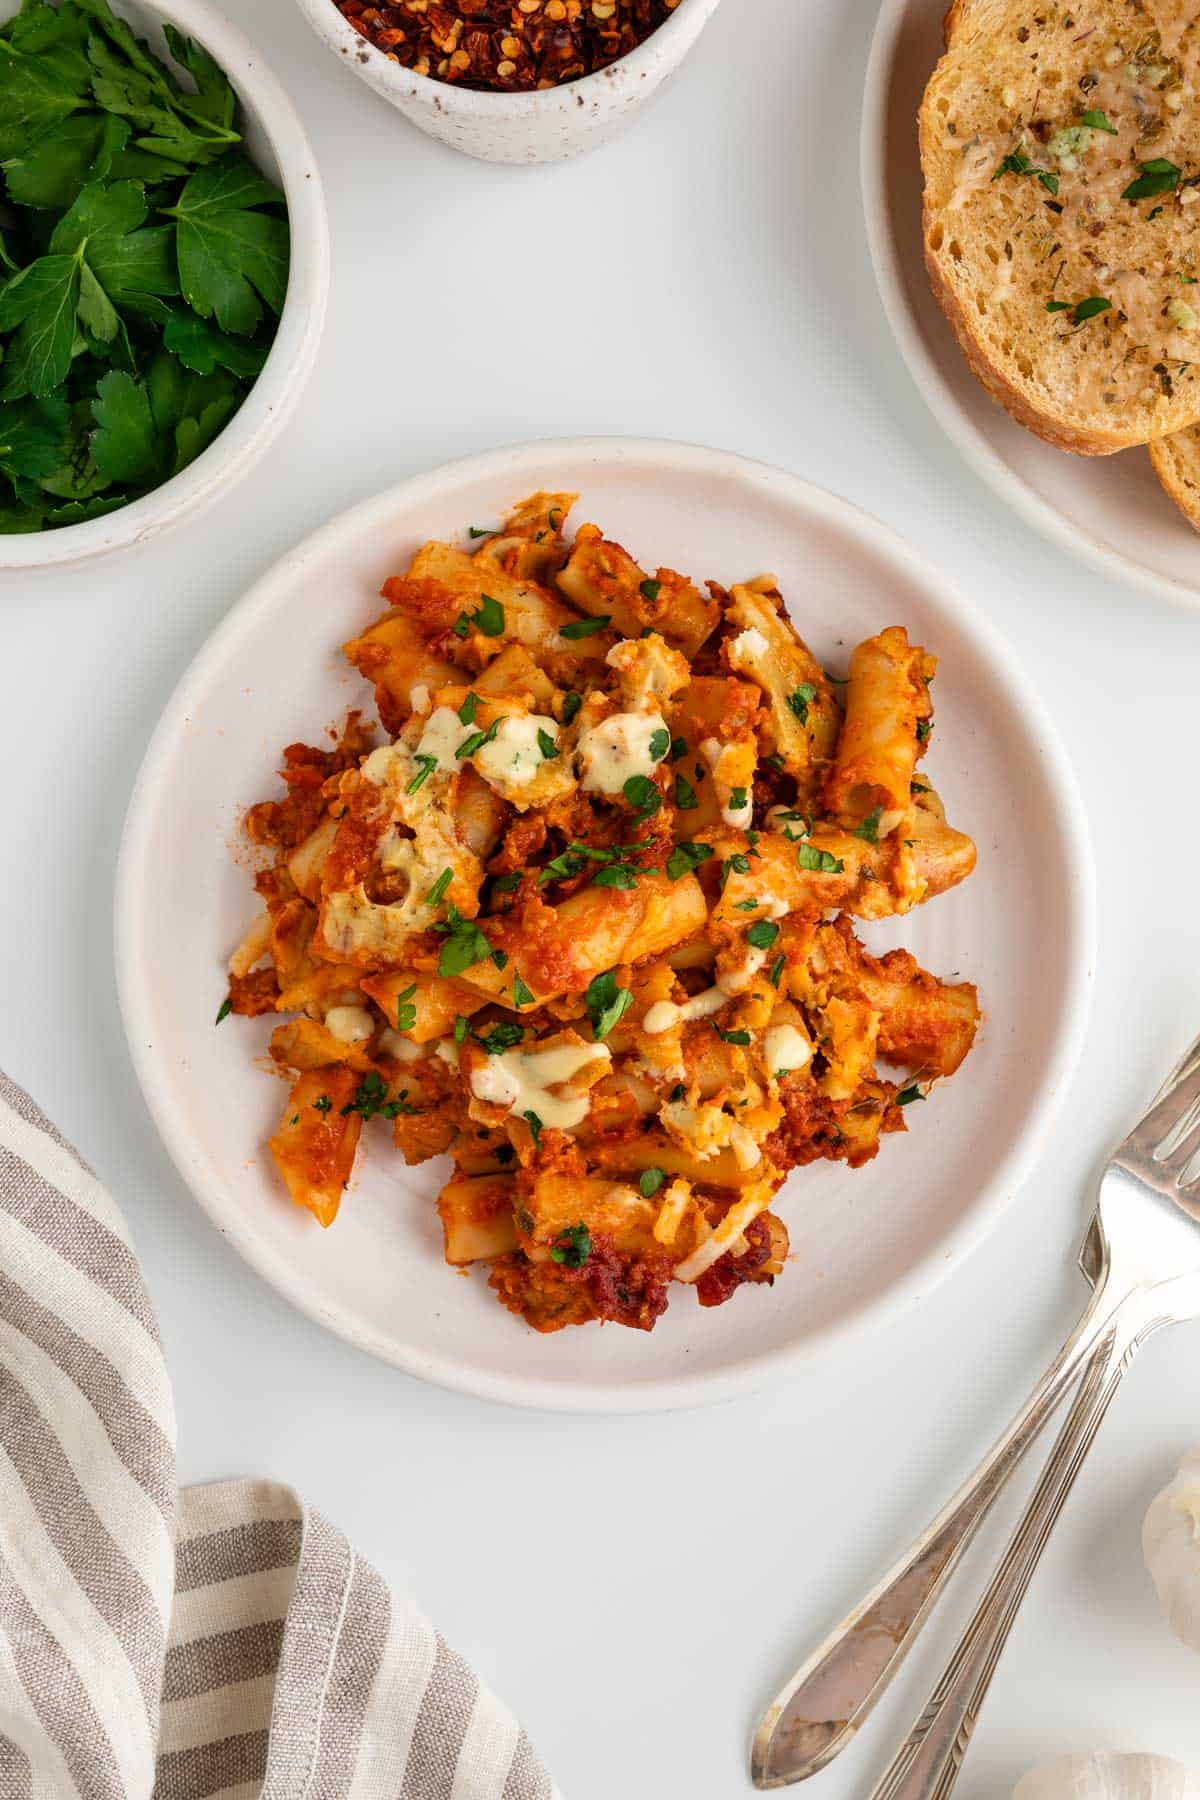 a serving of vegan baked ziti on a white plate surrounded by a striped linen napkin, two forks, a bowl of fresh parsley, a bowl of crushed red pepper, and vegan garlic bread